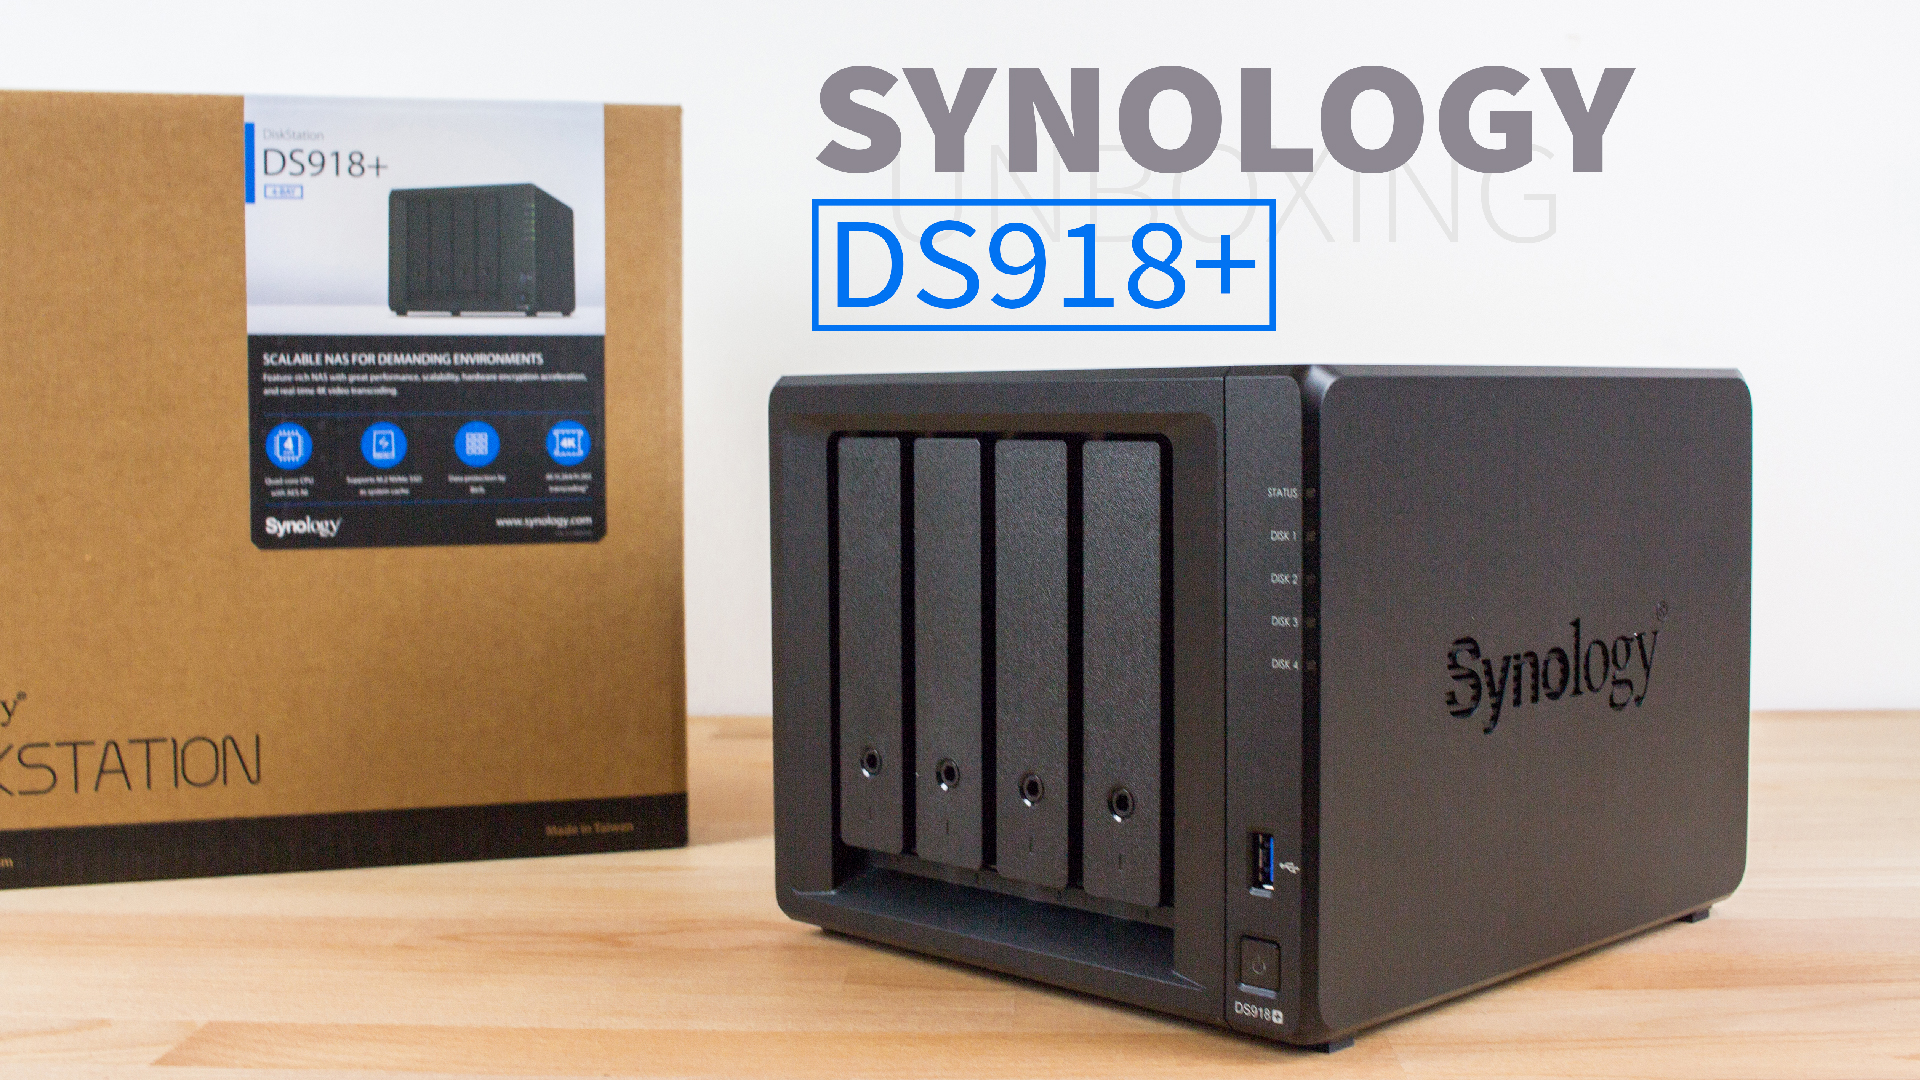 Synology DS918+ DigitaleWelt